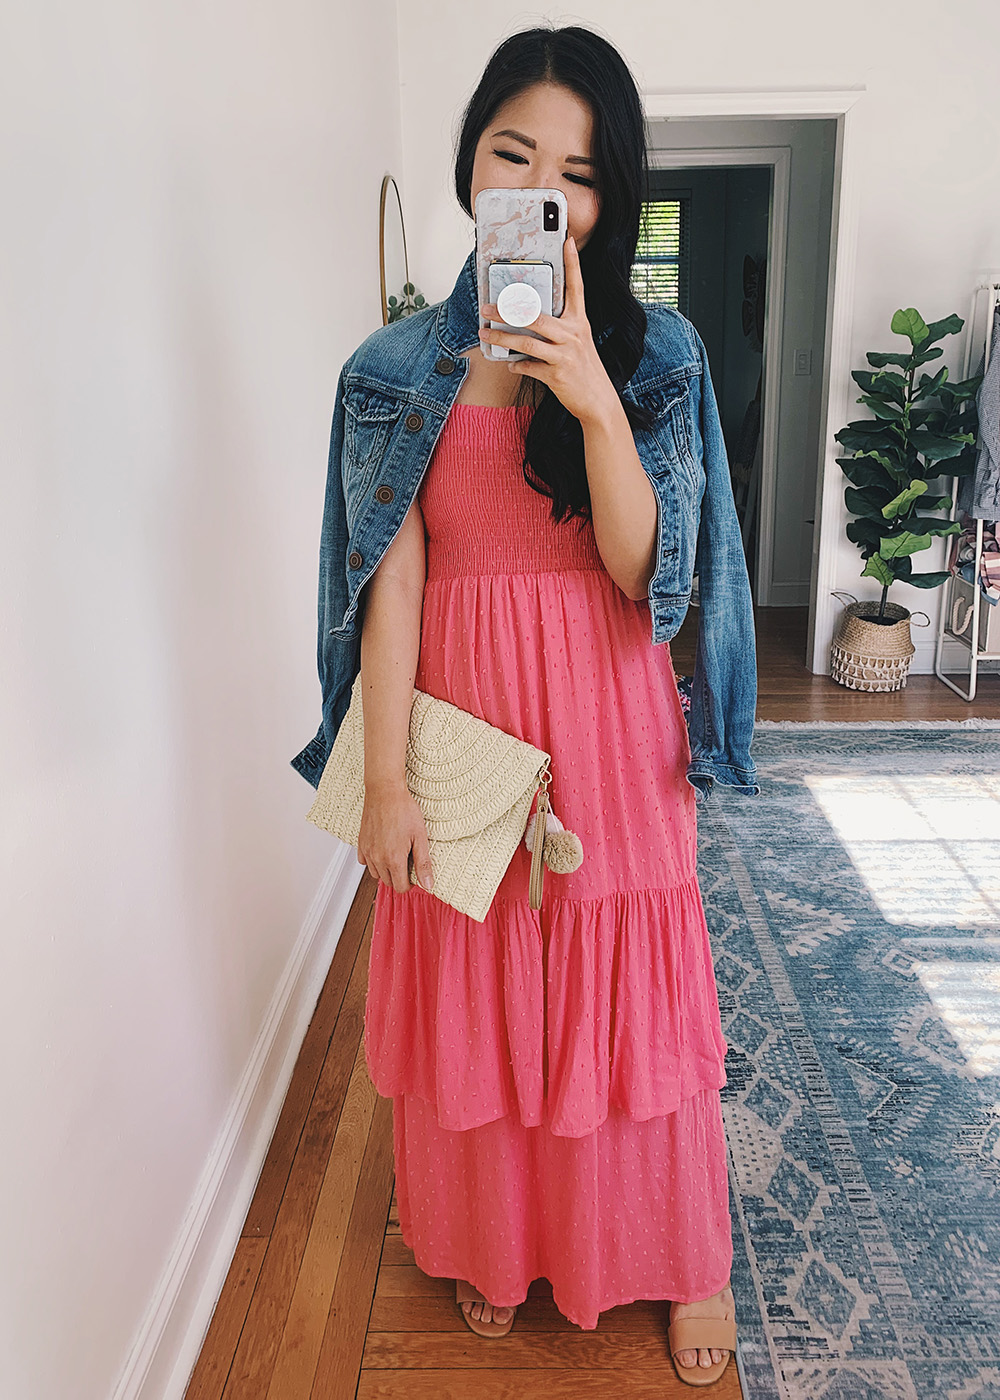 Colorful Summer Maxi Dress: Denim Jacket, Coral Ruffle Dress, Straw Clutch with Pom Poms